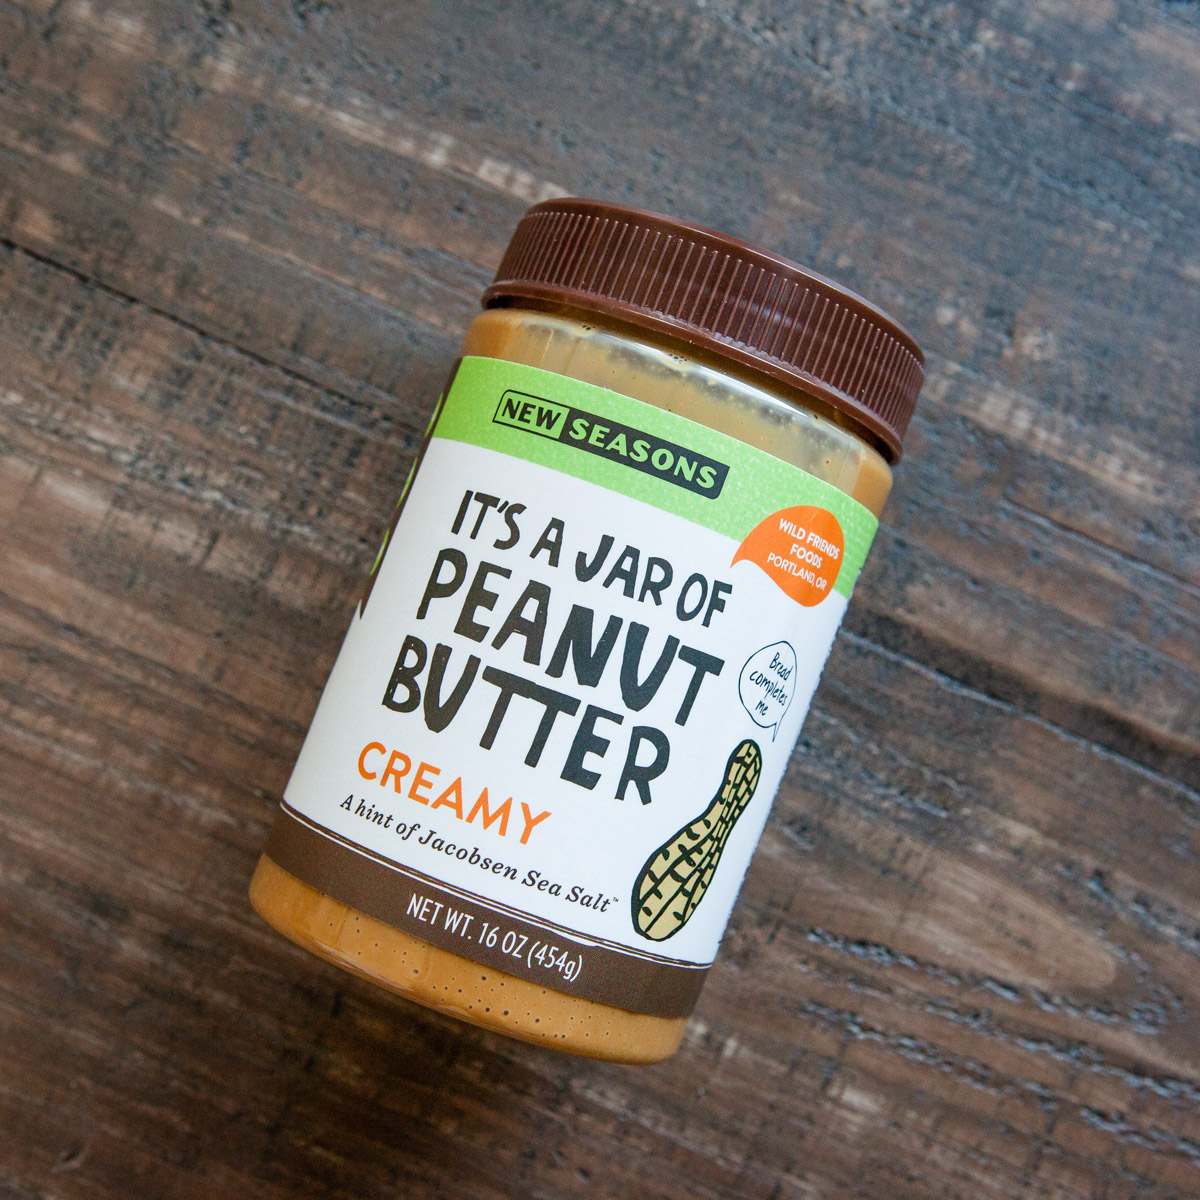 Jar of New Seasons peanut butter